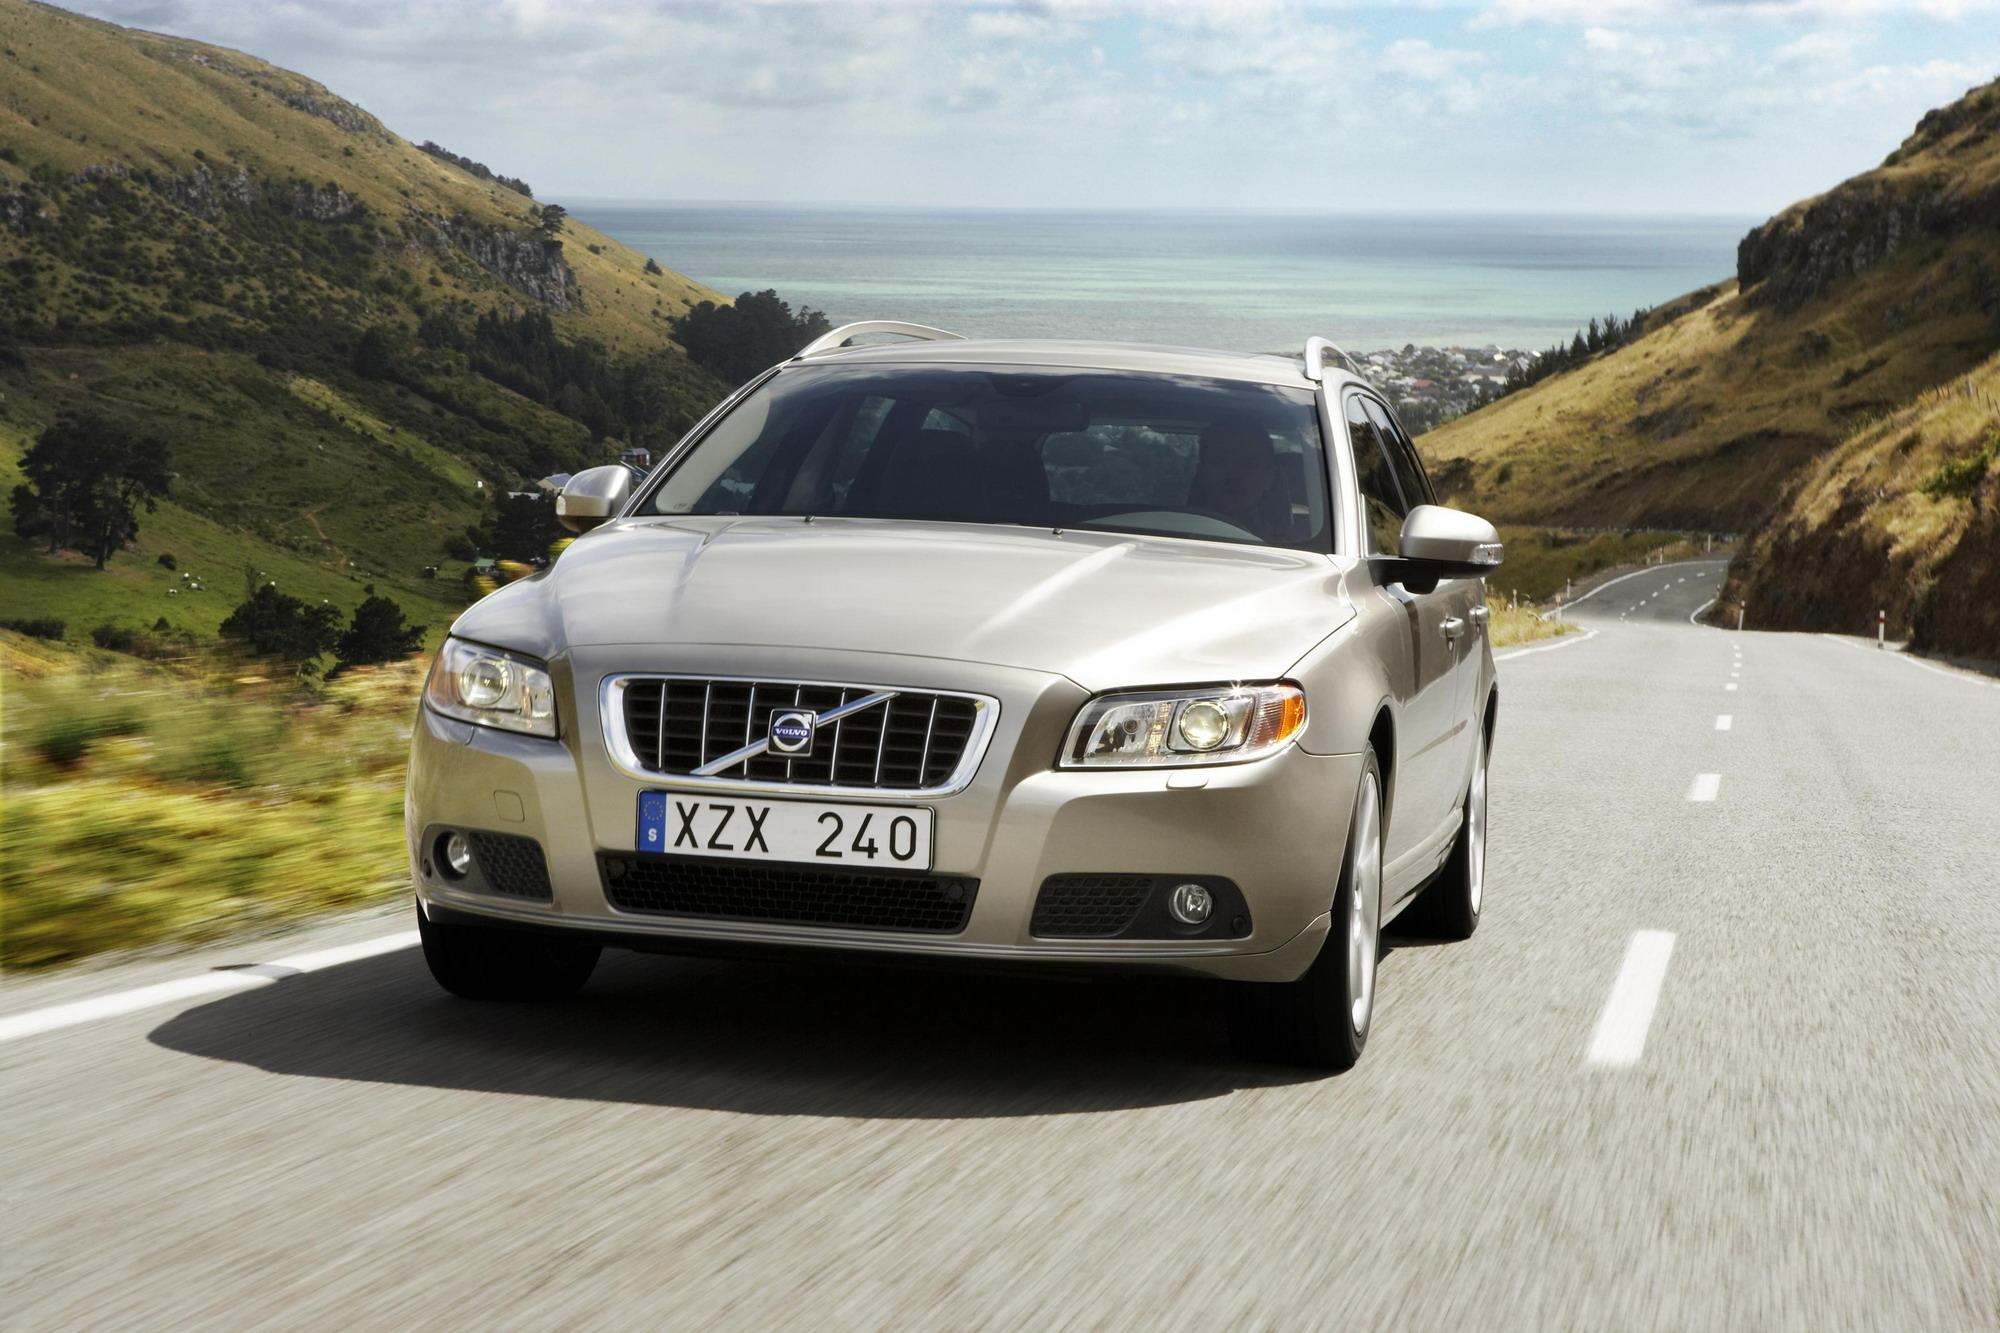 The all new volvo v70 launched in 2007 is the third model in volvo s successful v70 concept the new model strengthens volvo s position in the premium